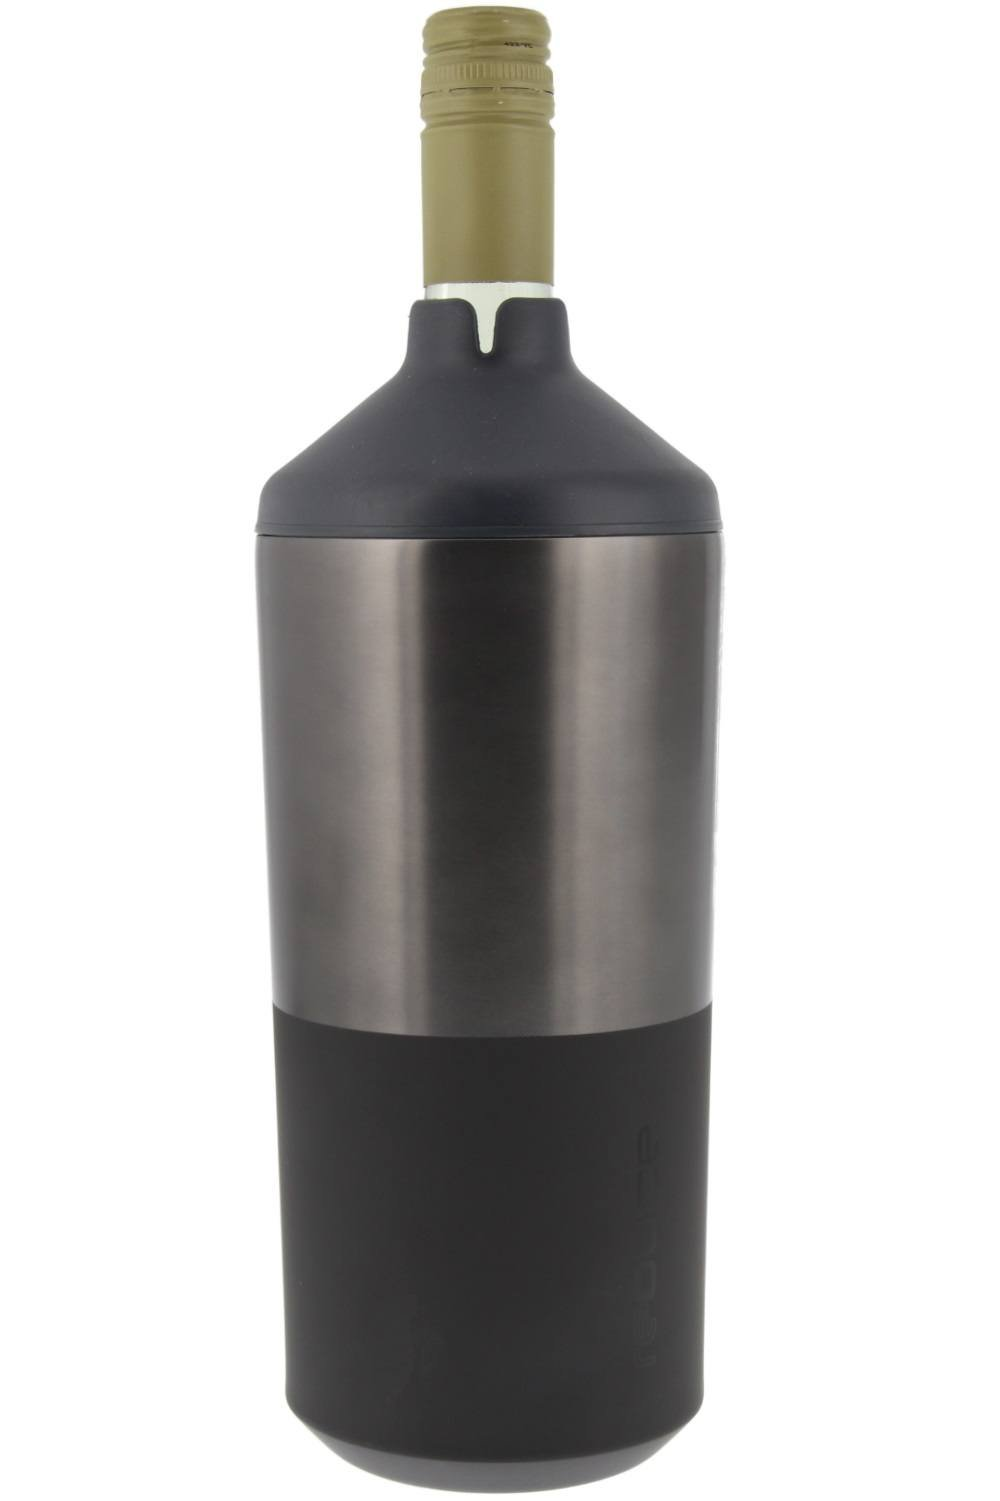 Portable Wine Bottle Cooler by REDUCE - Stainless Steel, Insulated Chiller to Keep Wine at the Perfect Temperature, No Ice Required - Ideal for Outdoor Summer Parties, Fits Most Wine Bottles - Gray